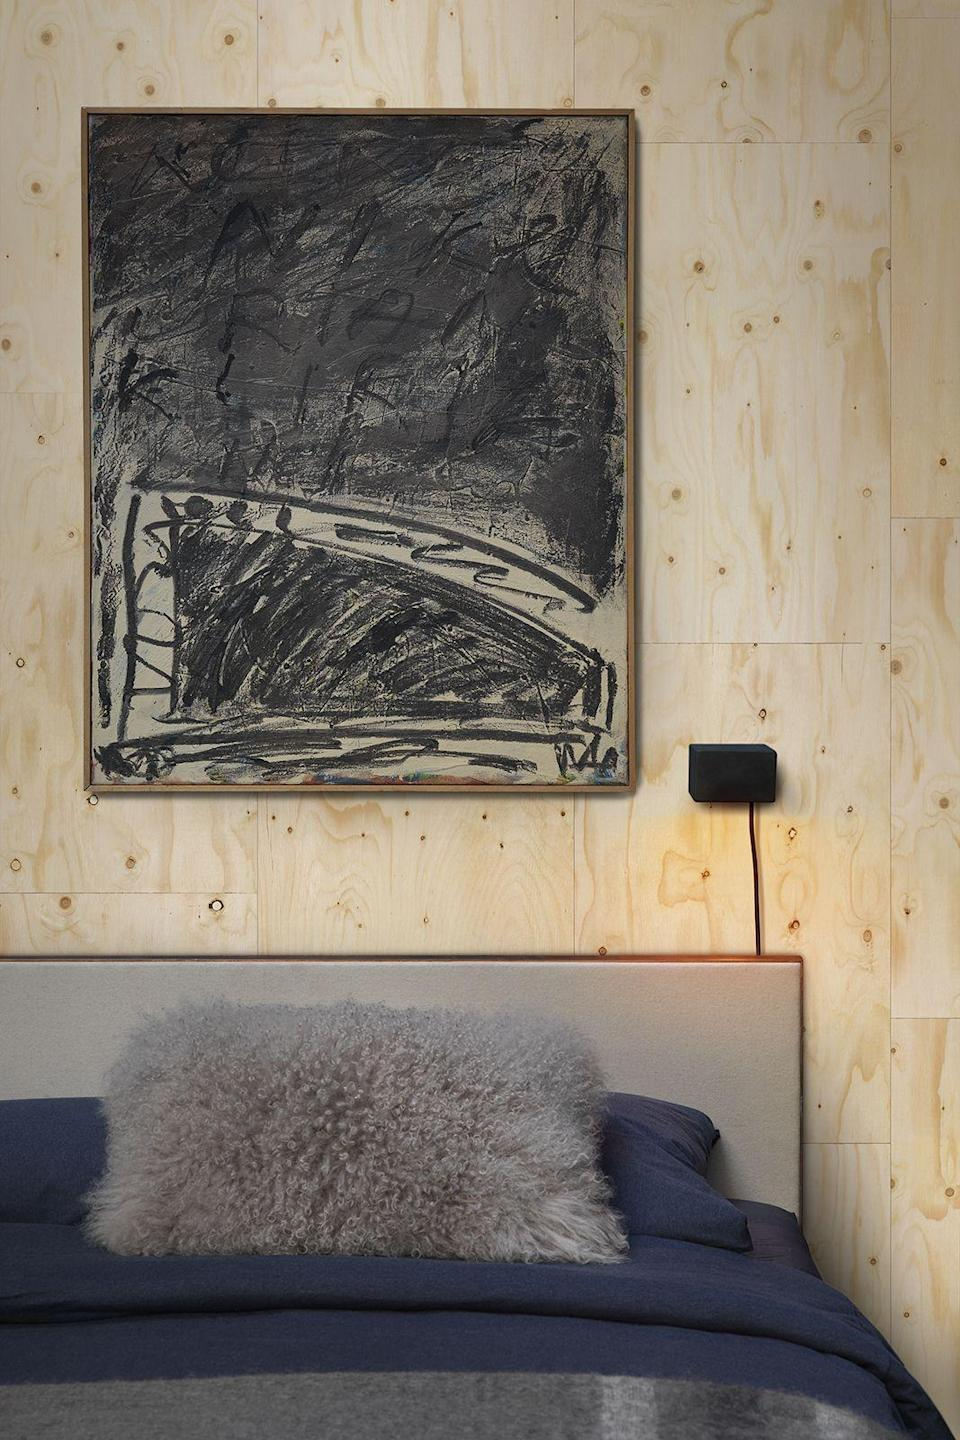 """<p>Introducing wood into a space is a fail-safe way to add warmth and cosiness. Pale timbers like birch bring a Scandi simplicity, but there's no need to get the drill out – this plywood-effect paper does the job without the DIY.</p><p><strong>Piet Hein Eek</strong> PHM-37 Plywood Wallpaper, £199 per 10 metre roll, available at <a href=""""https://www.rockettstgeorge.co.uk/phm-37-plywood-wallpaper-by-piet-hein-eek-46559-p.html"""" rel=""""nofollow noopener"""" target=""""_blank"""" data-ylk=""""slk:Rockett St George"""" class=""""link rapid-noclick-resp"""">Rockett St George</a></p>"""